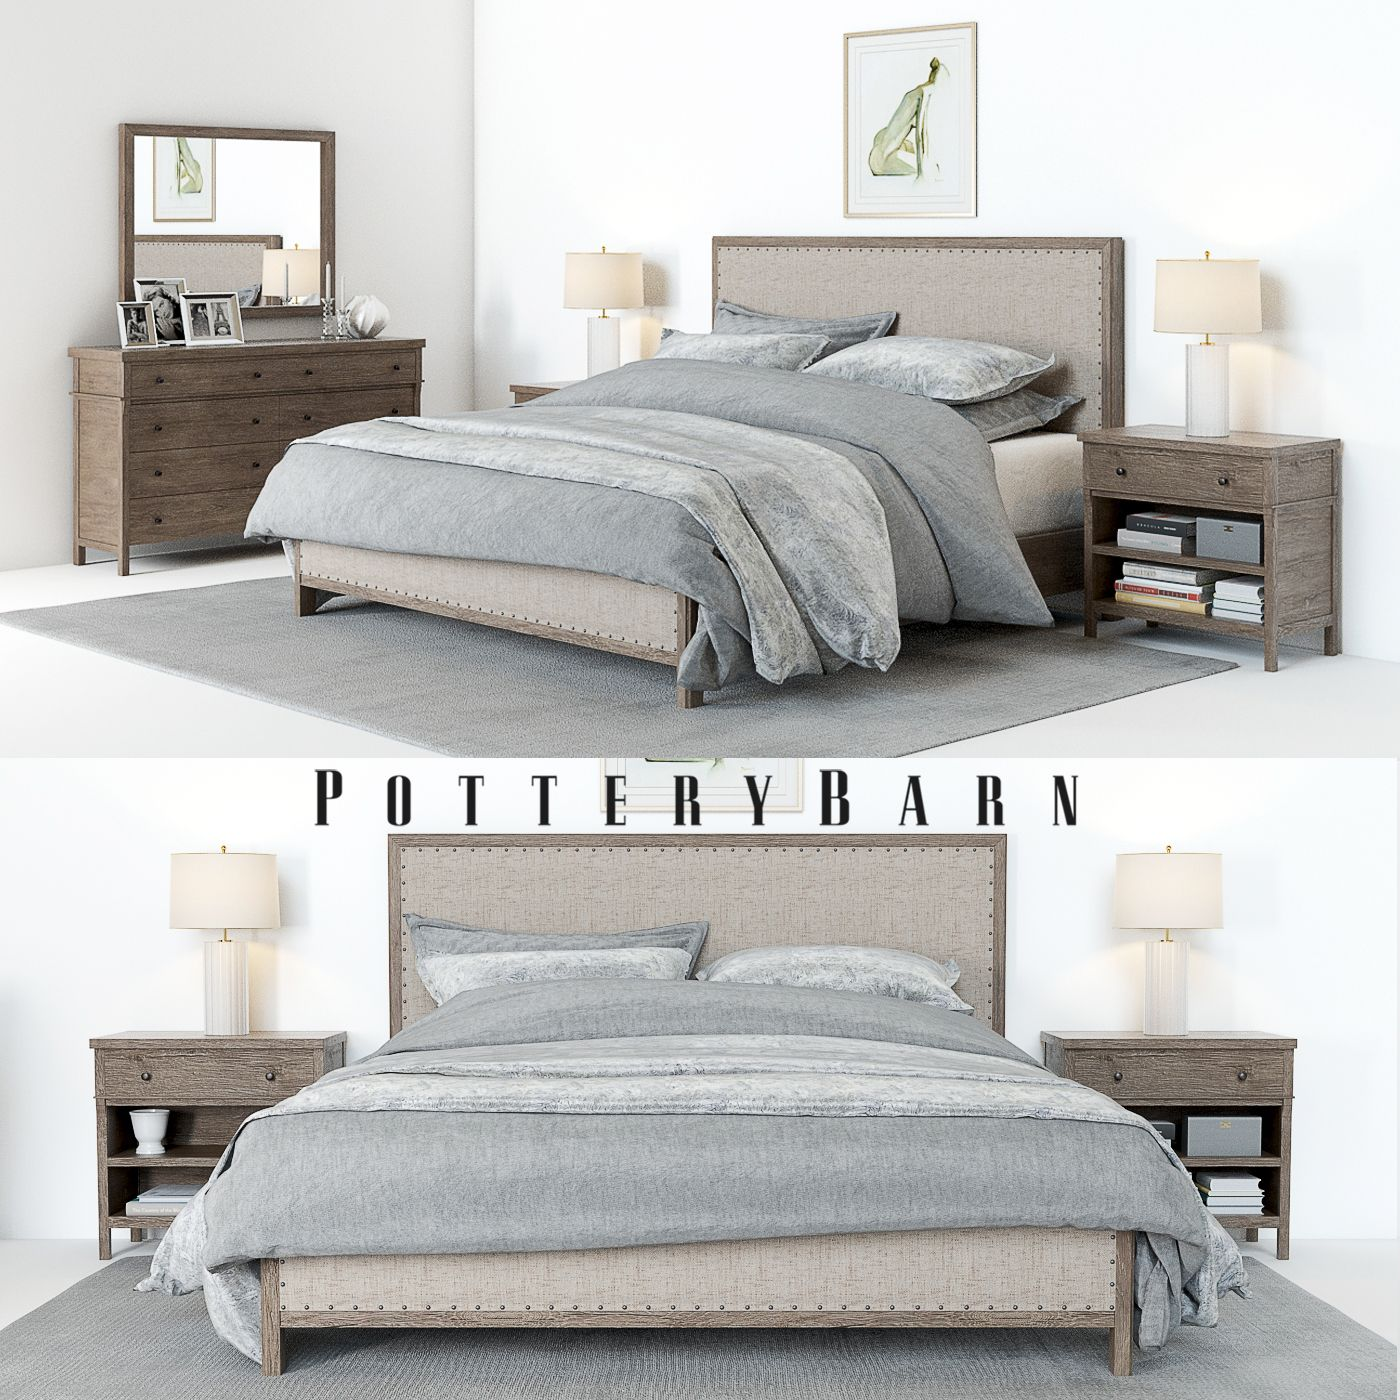 Pottery Barn / Toulouse Bedroom set & Accessoires | Bedroom ...